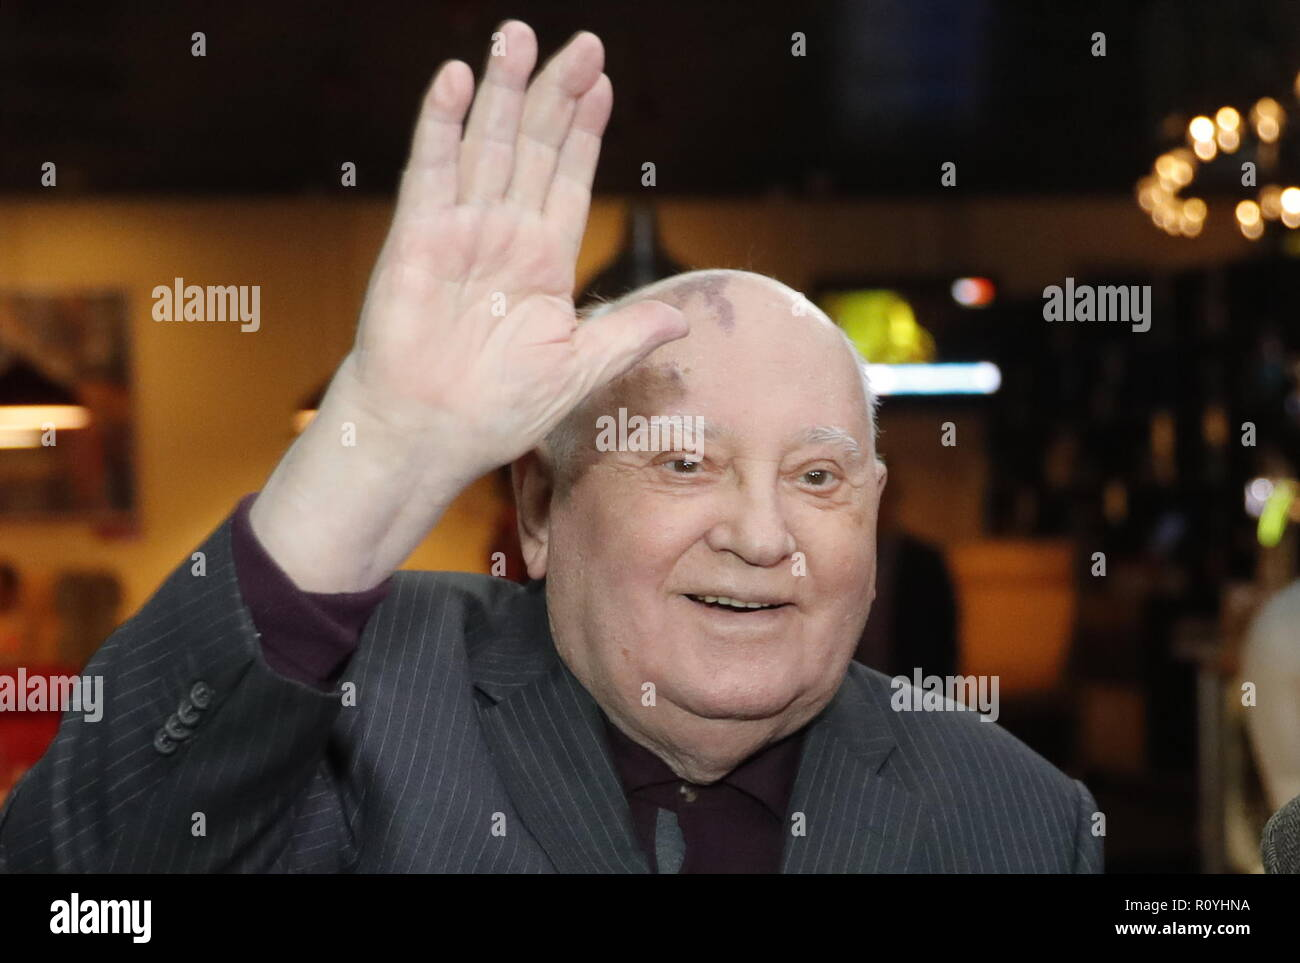 Moscow, Russia. 08th Nov, 2018. MOSCOW, RUSSIA - NOVEMBER 8, 2018: The last leader of the Soviet Union, Mikhail Gorbachev (C), attends the Moscow premiere of the documentary Meeting Gorbachev by German filmmaker Werner Herzog and British filmmaker Andre Singer at the Karo 8 Kapitoly Vernadskogo cinema. Mikhail Japaridze/TASS Credit: ITAR-TASS News Agency/Alamy Live News - Stock Image